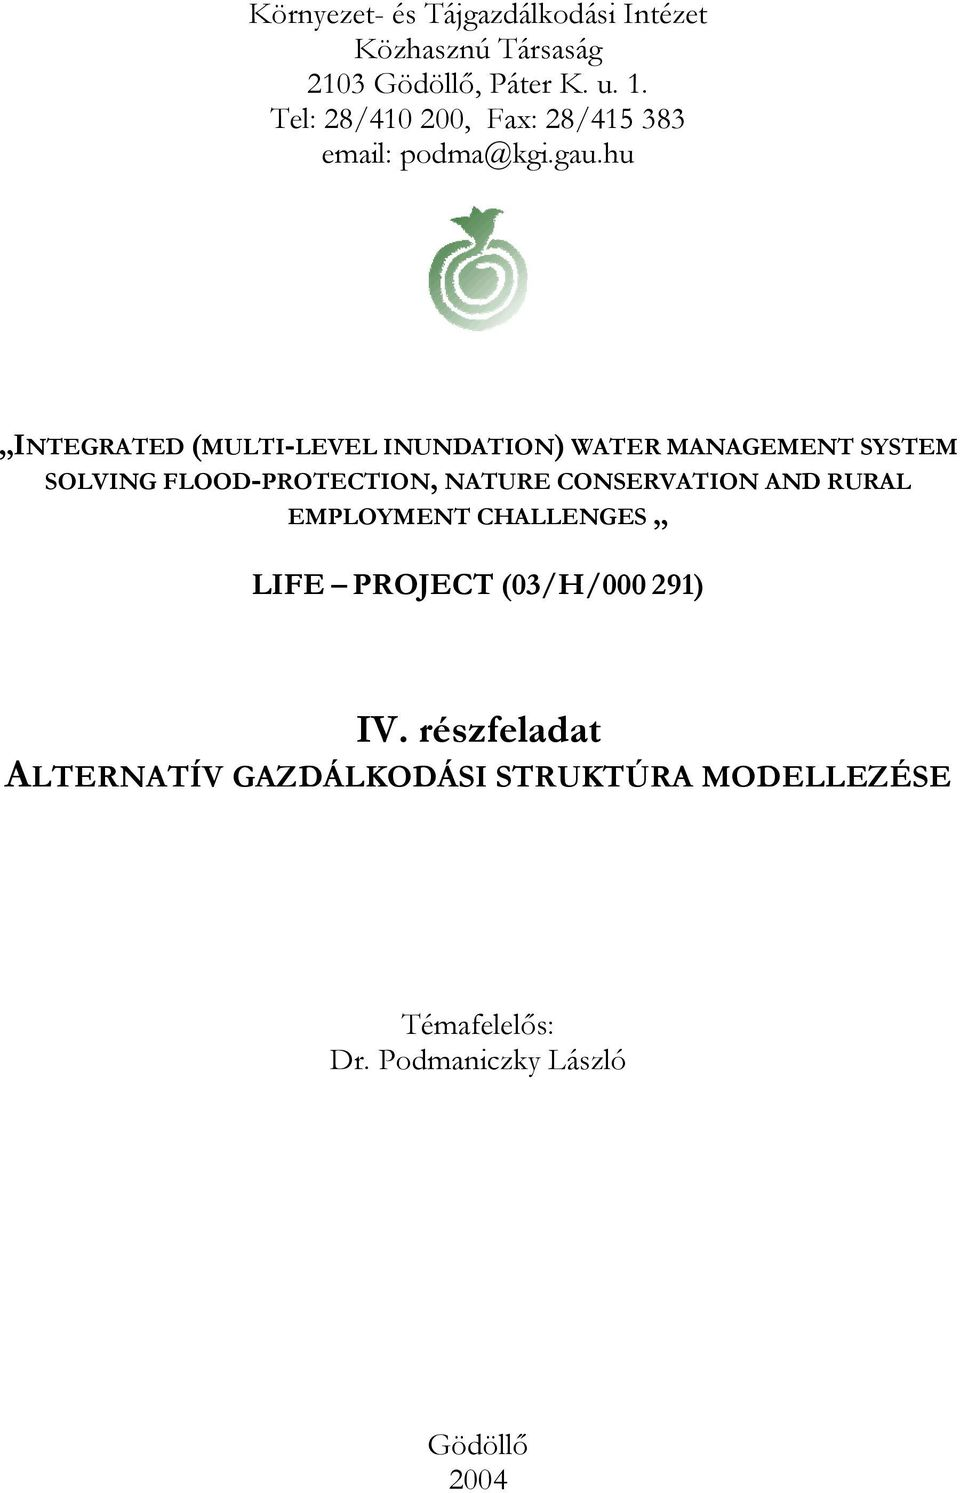 hu INTEGRATED (MULTI-LEVEL INUNDATION) WATER MANAGEMENT SYSTEM SOLVING FLOOD-PROTECTION, NATURE